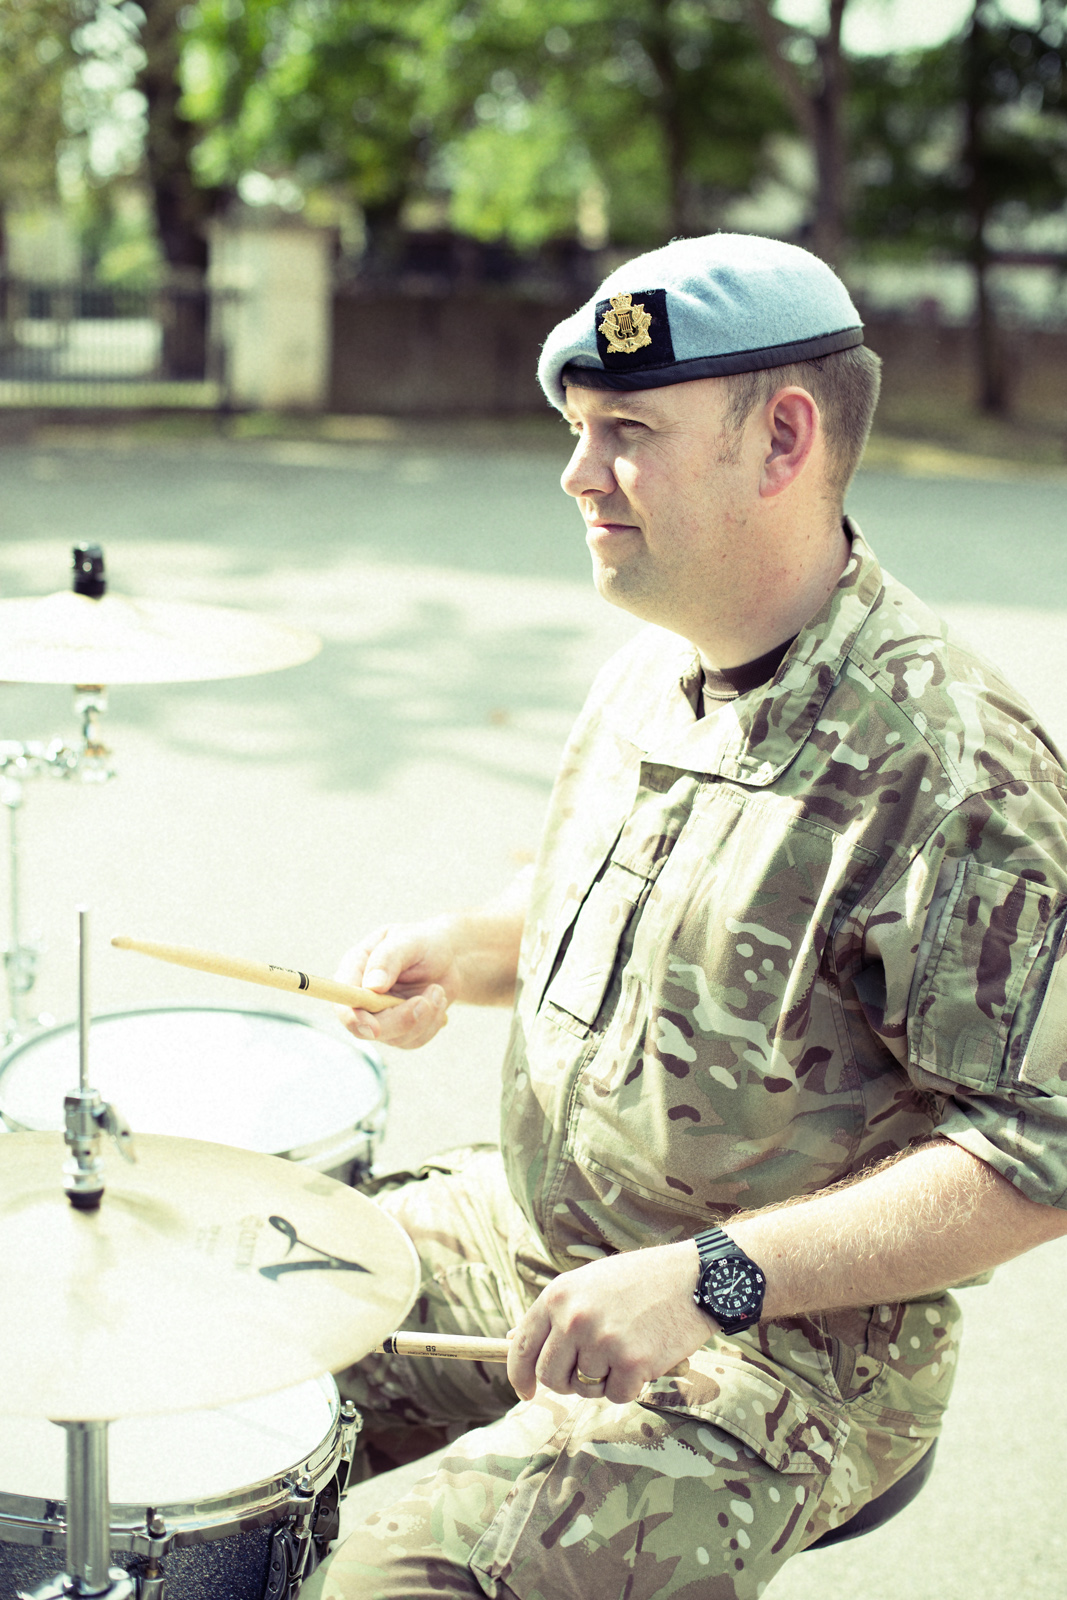 Army Drummer-Drummers Journal-Photos Bex Wade low res-16.jpg